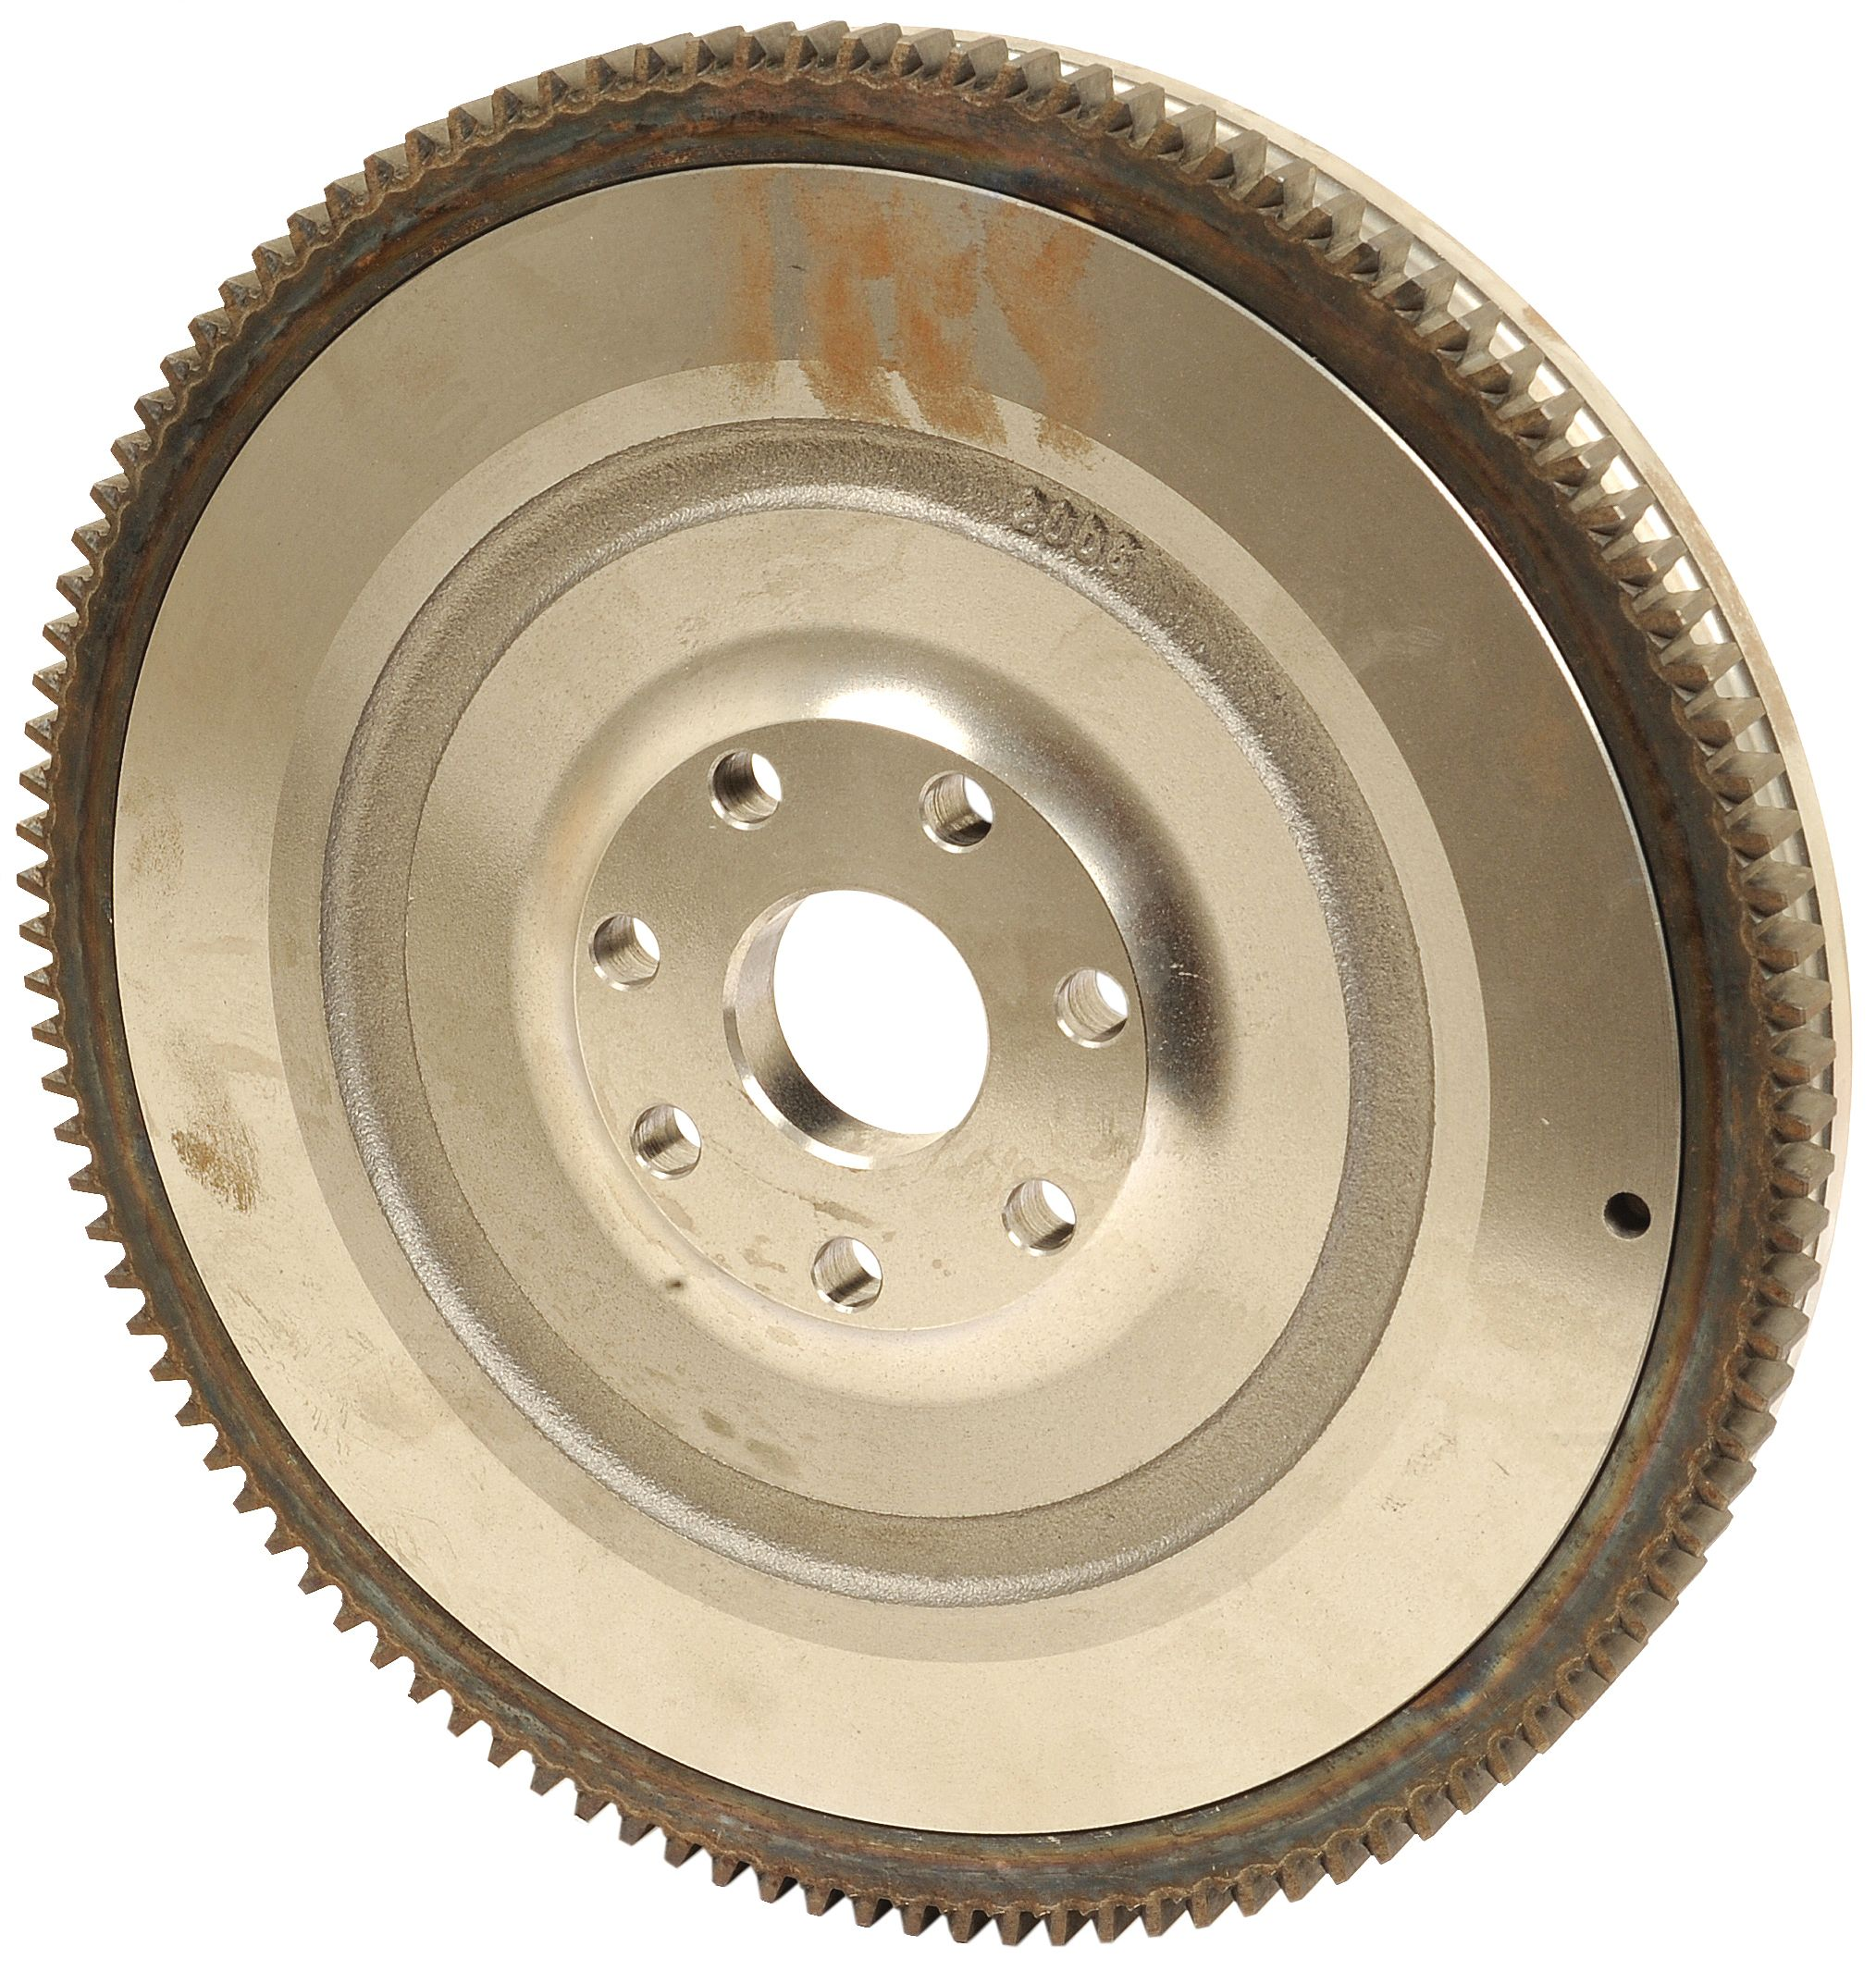 CASE IH FLYWHEEL ASSEMBLY 107537